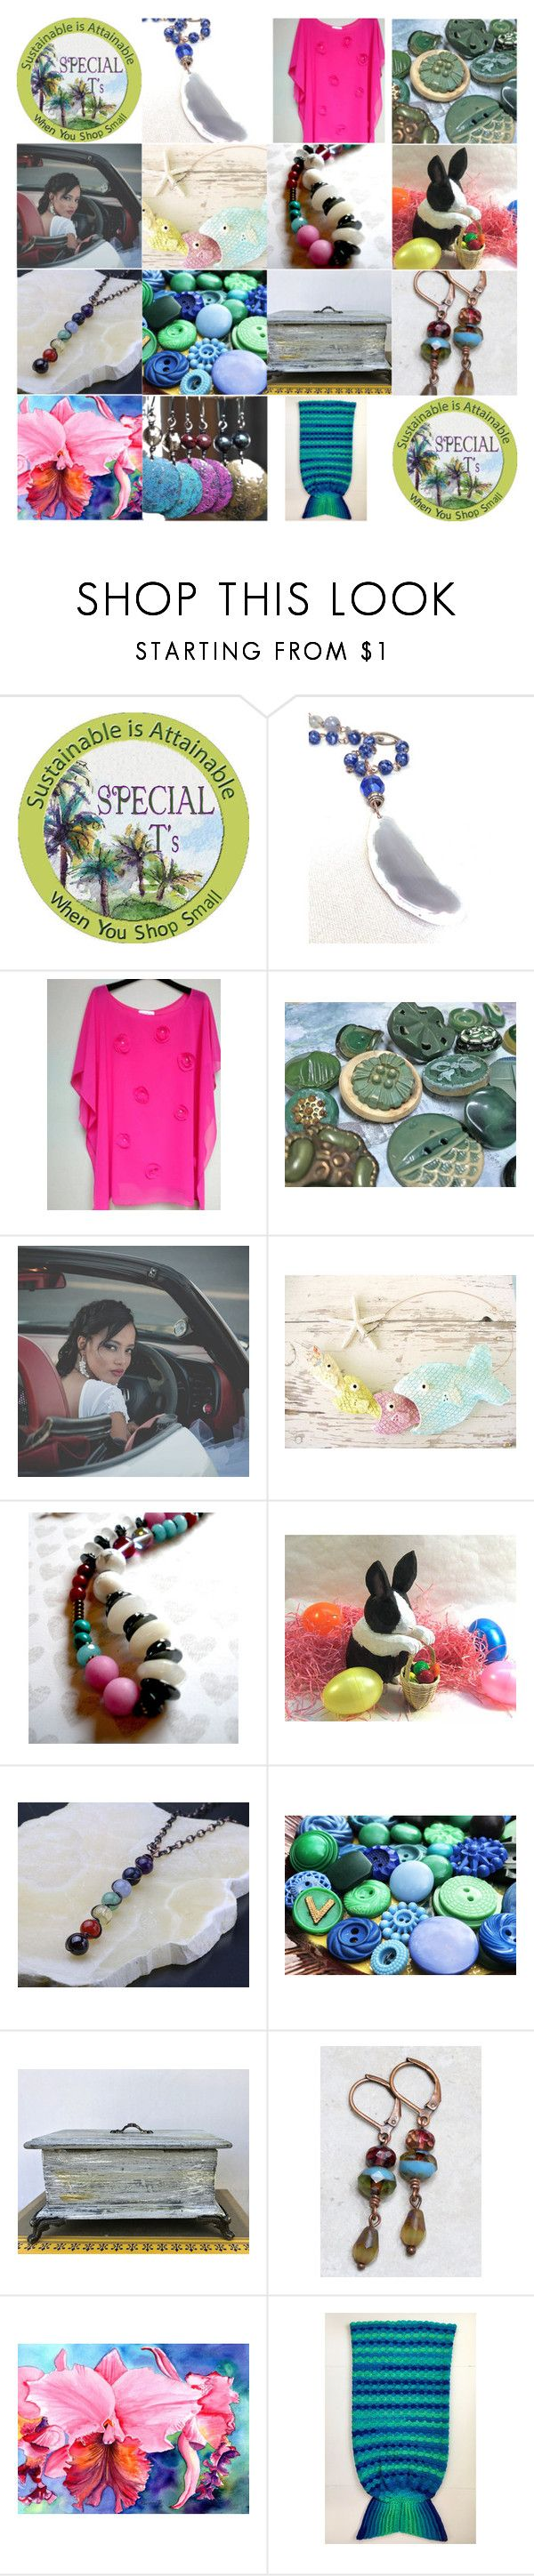 """""""Special TGIF"""" by artbymarionette ❤ liked on Polyvore featuring handmade, shopsmall, EtsySpecialT and specialTGIF"""